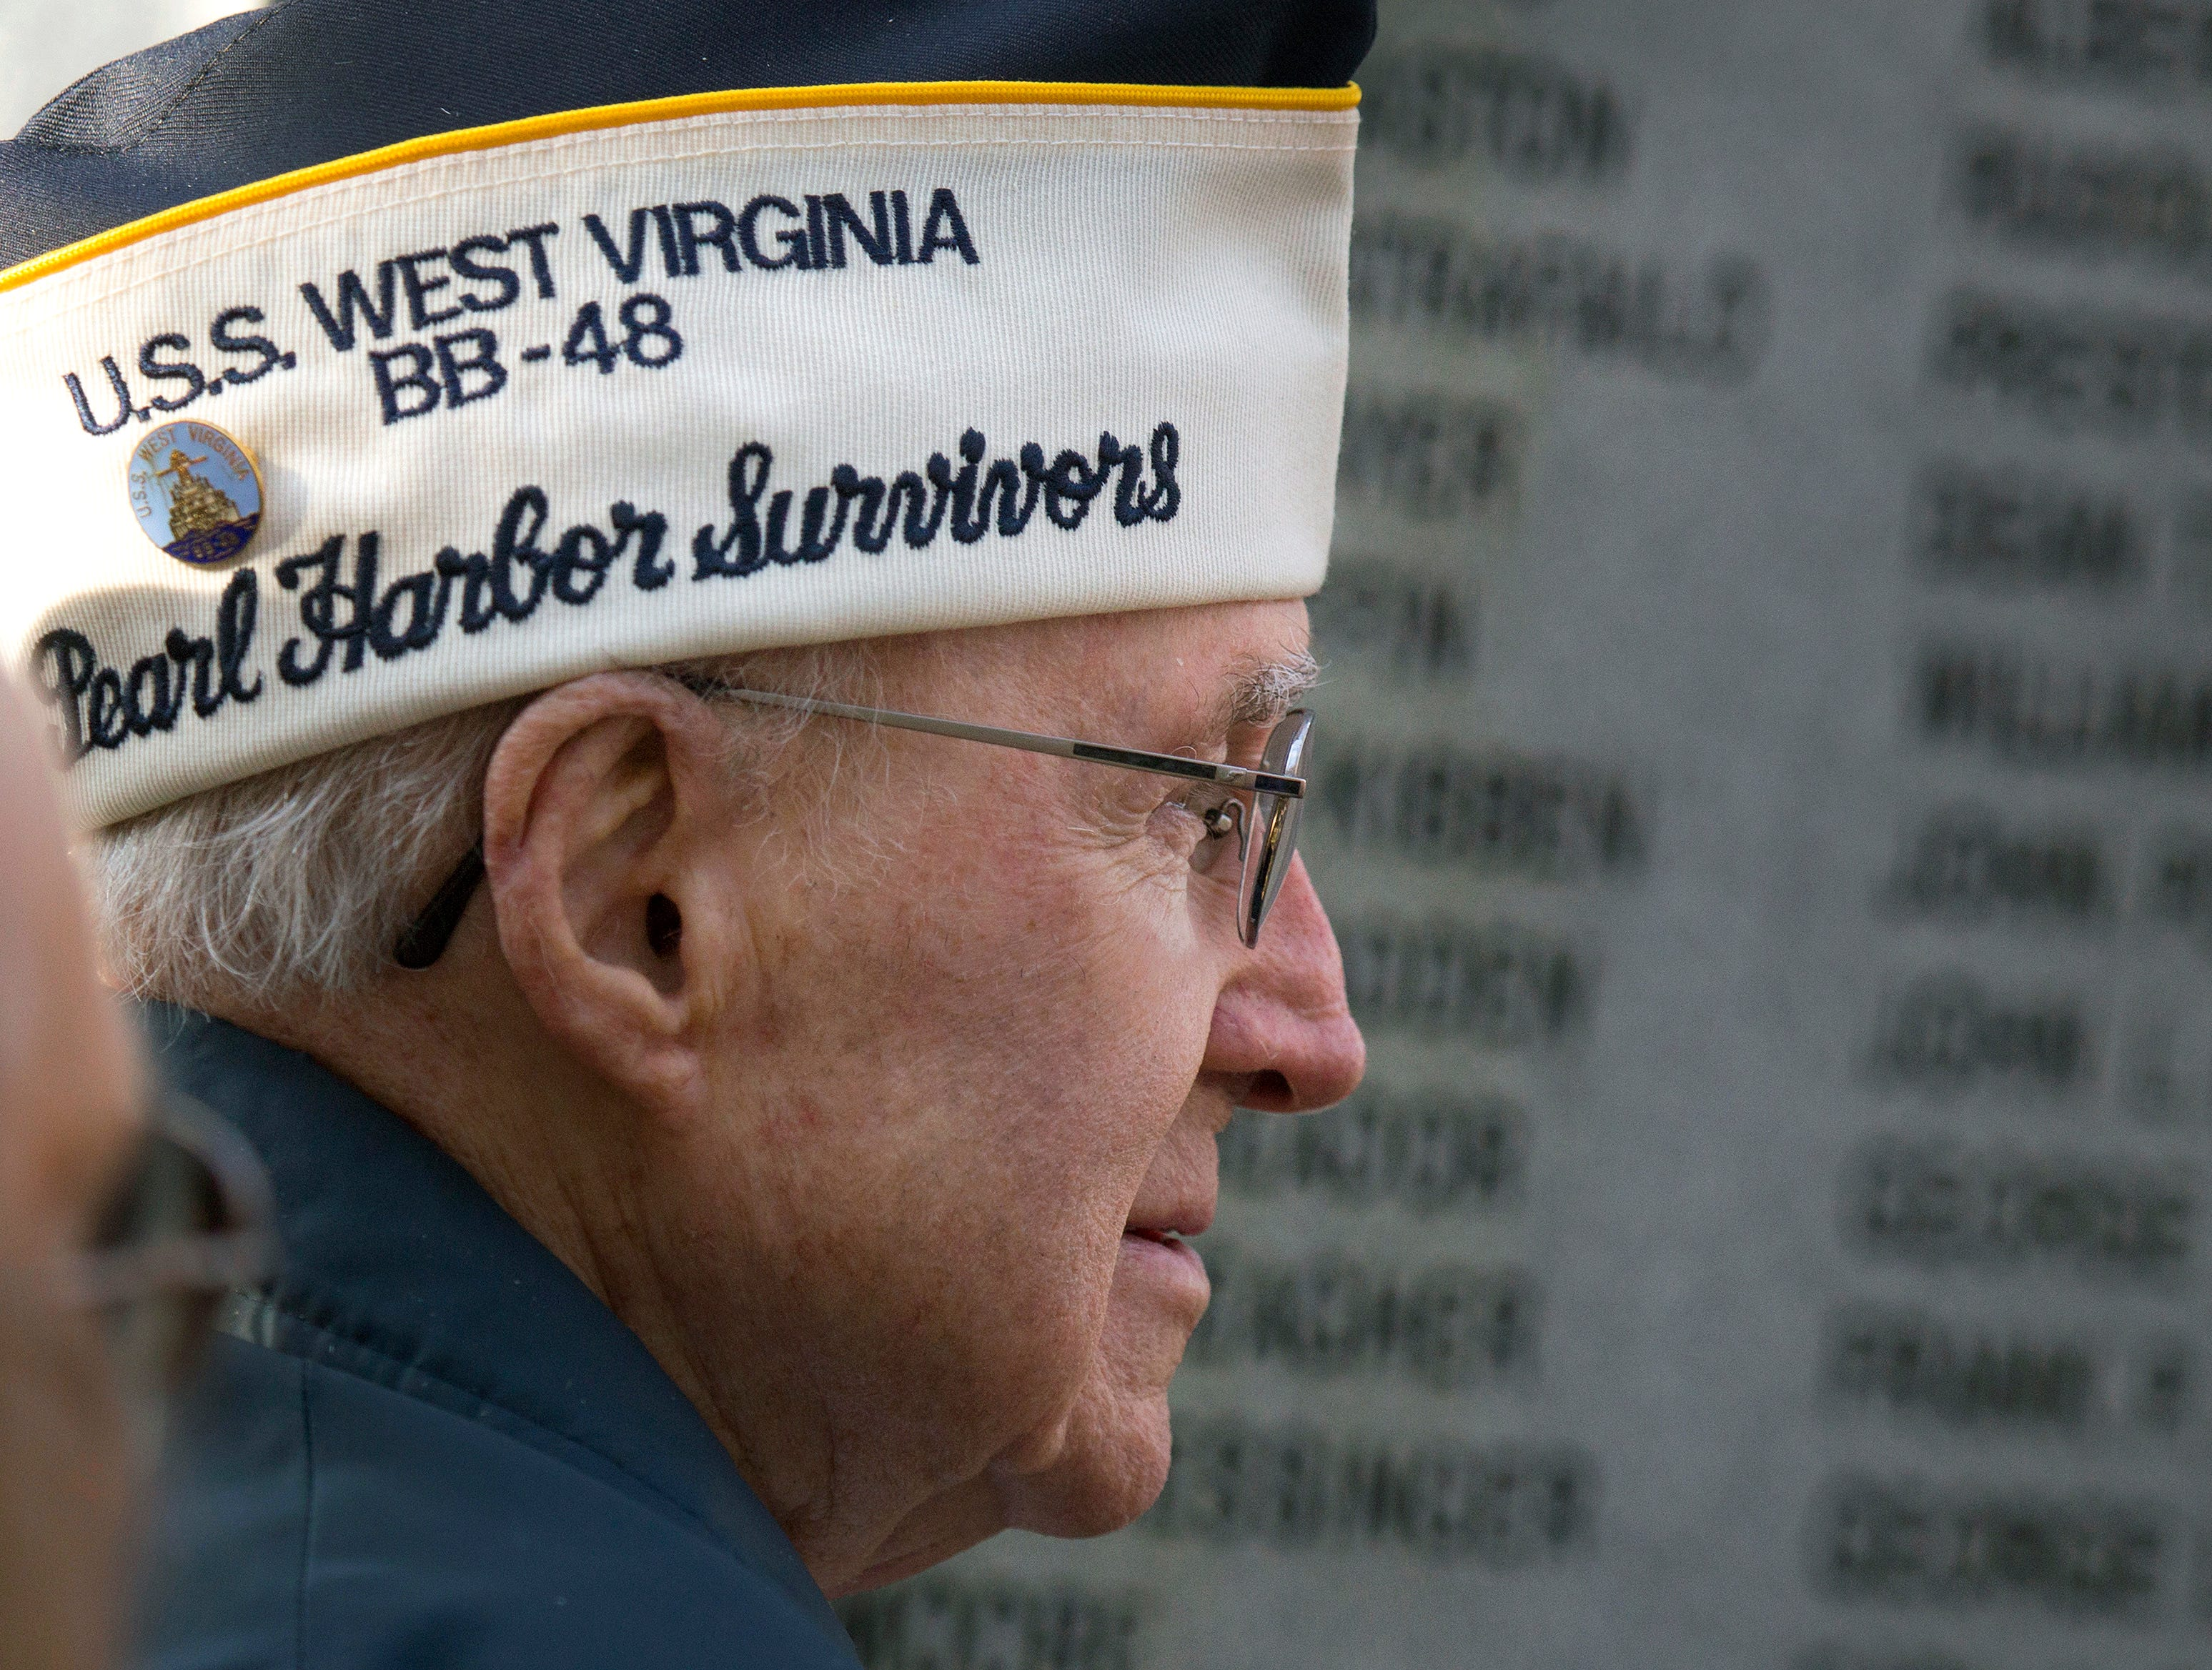 Paul J. Moore, the last remaining local member of the Pearl Harbor Survivors Association, Tidewater Chapter 2 organization, stands next to the Pearl Harbor Memorial during the annual Pearl Harbor Survivors Remembrance Ceremony, at Joint Expeditionary Base Little Creek-Fort, Friday, Dec. 7, 2018, in Virginia Beach, Va.